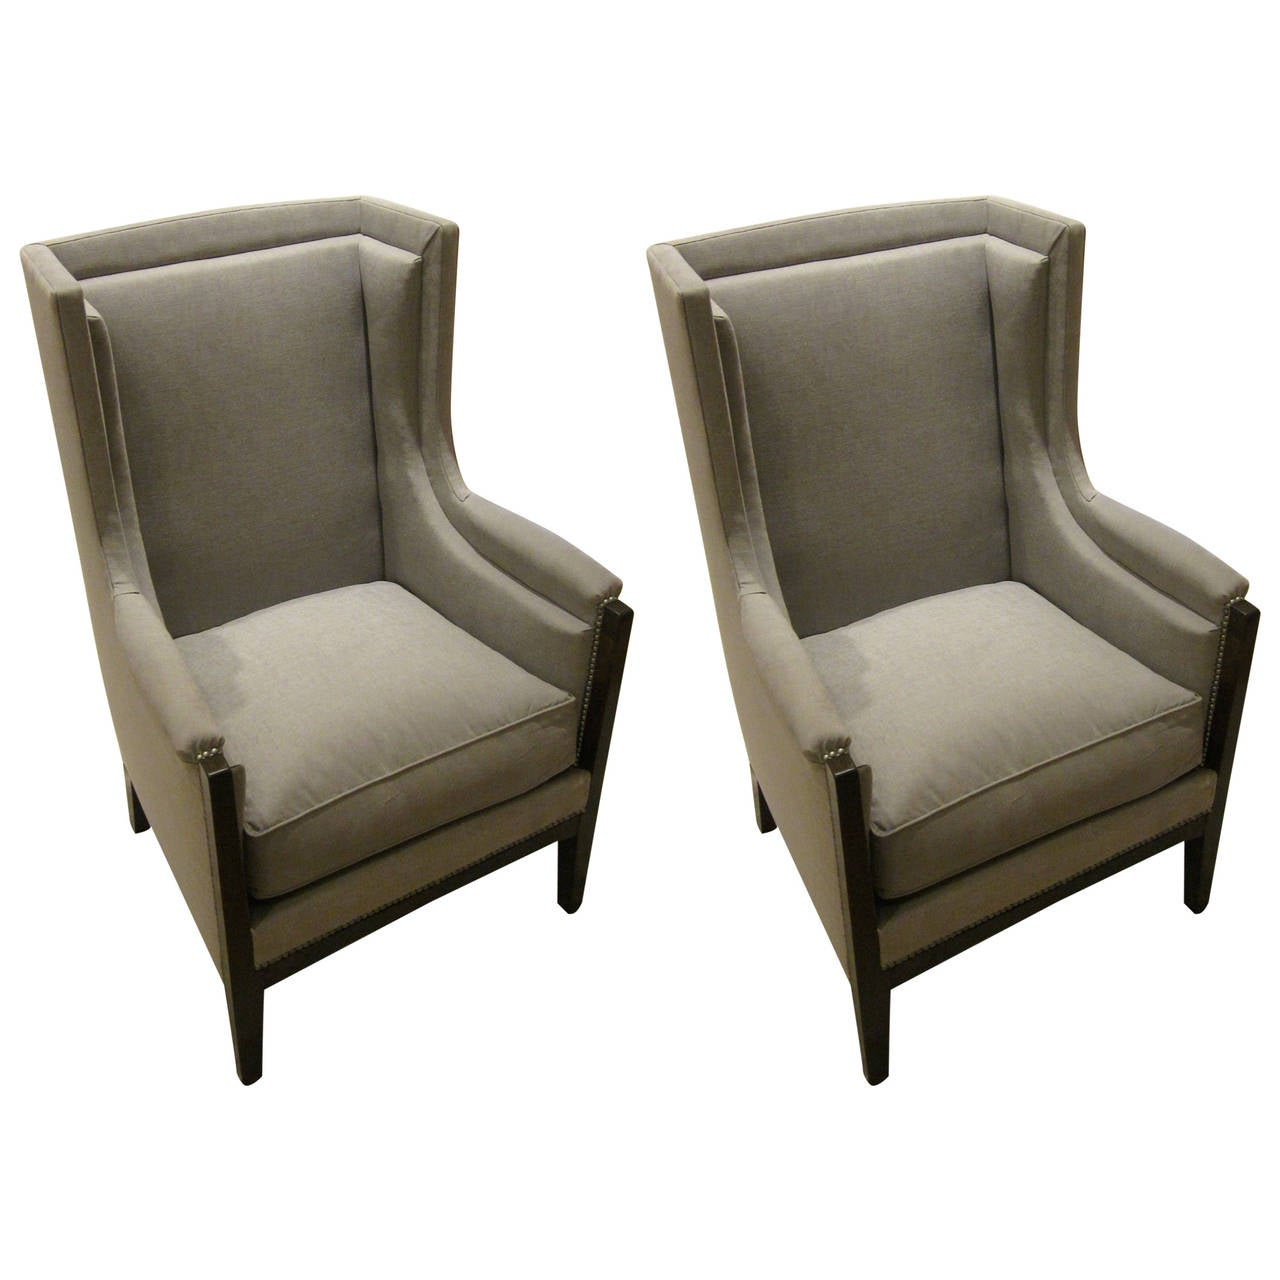 Pair of French Upholstered Grey Club Chairs, 1940s